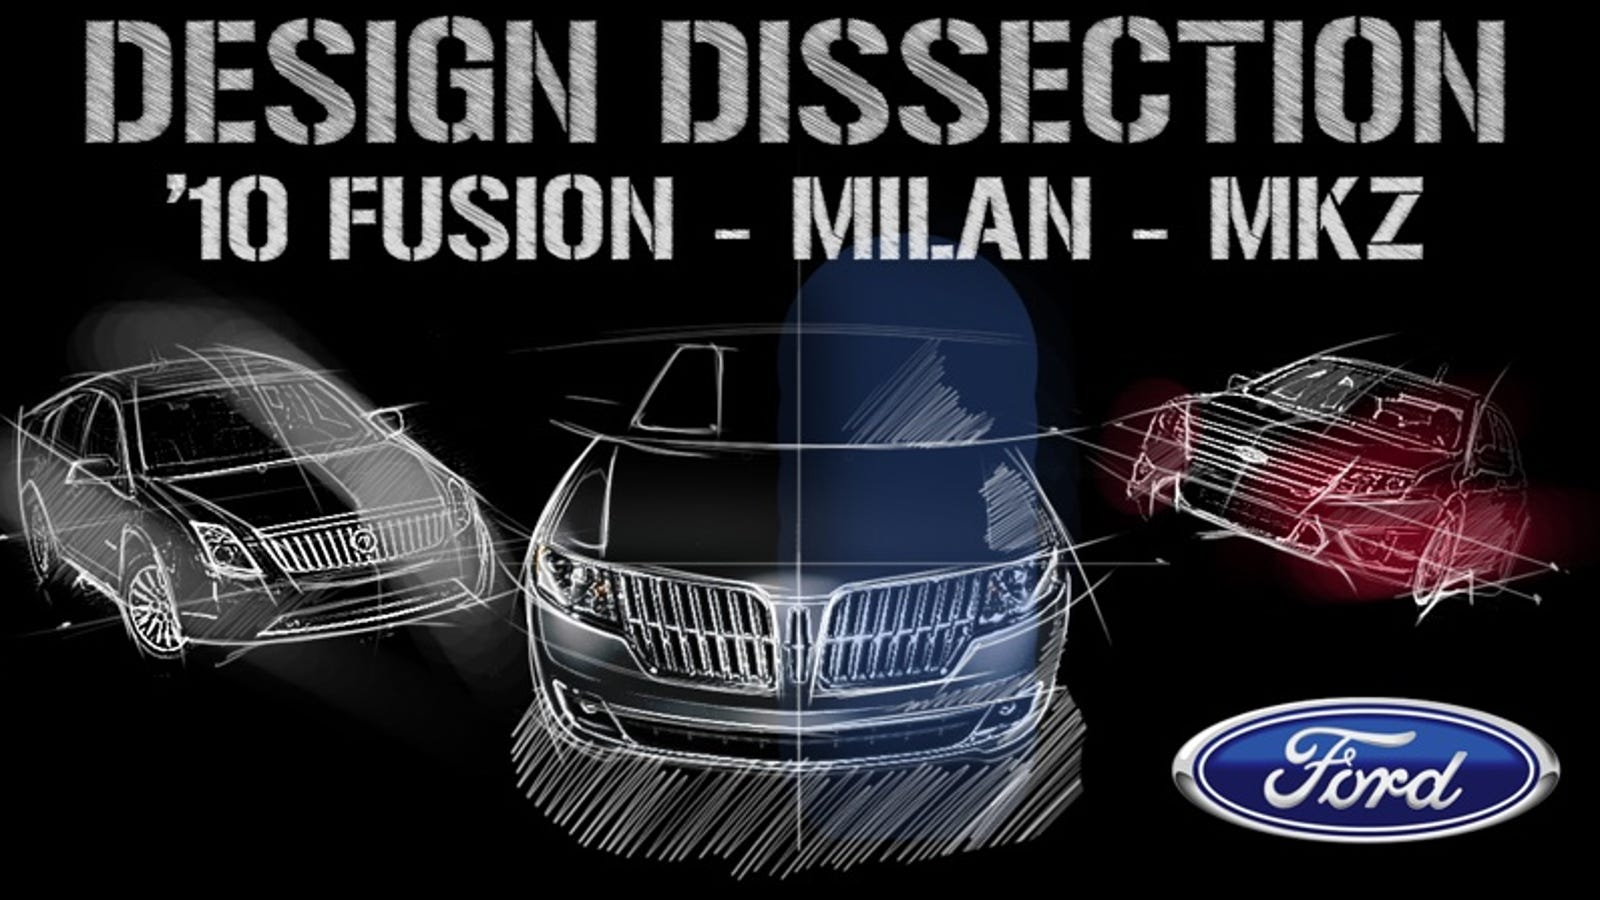 2010 Ford Fusion Mercury Milan Lincoln Mkz Design Dissected Hybrid Fuse Box Diagram